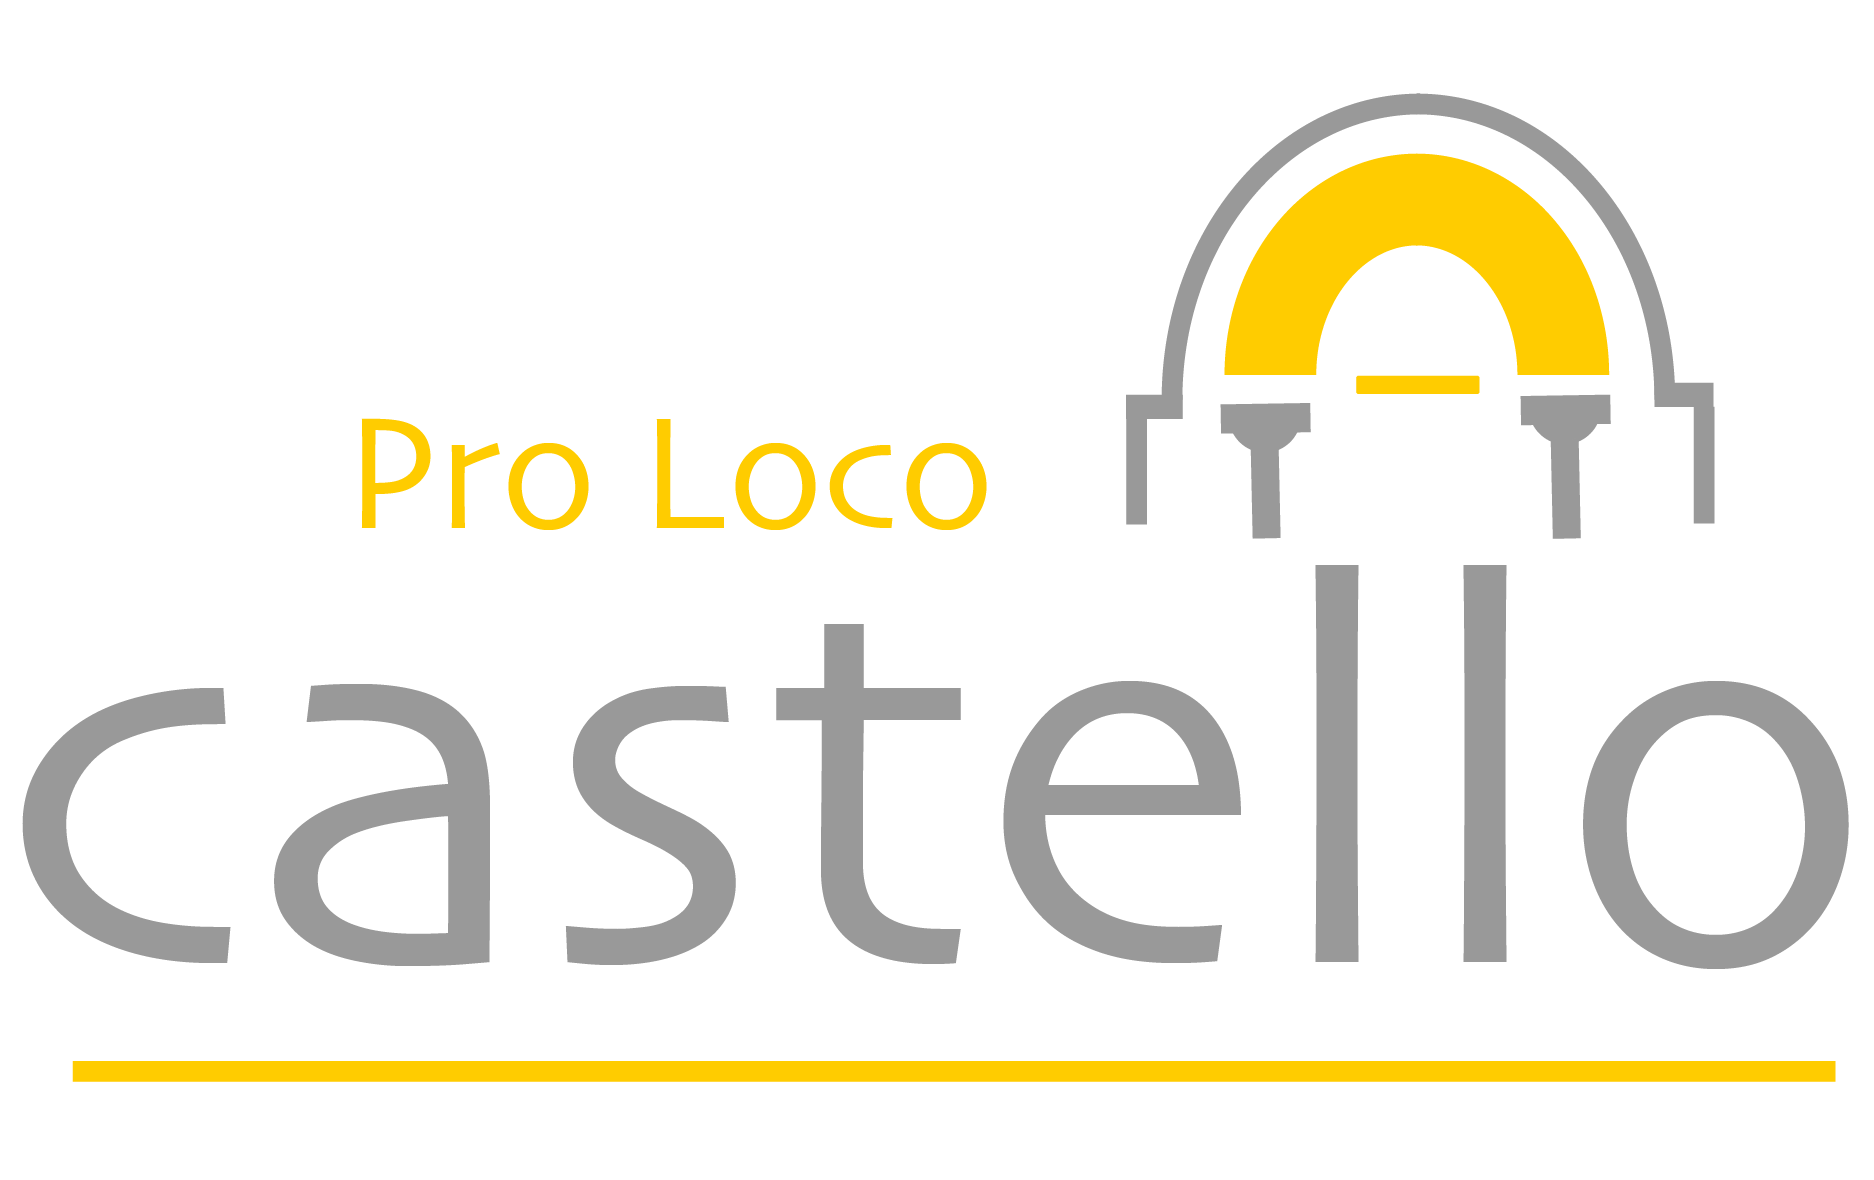 Proloco Castello